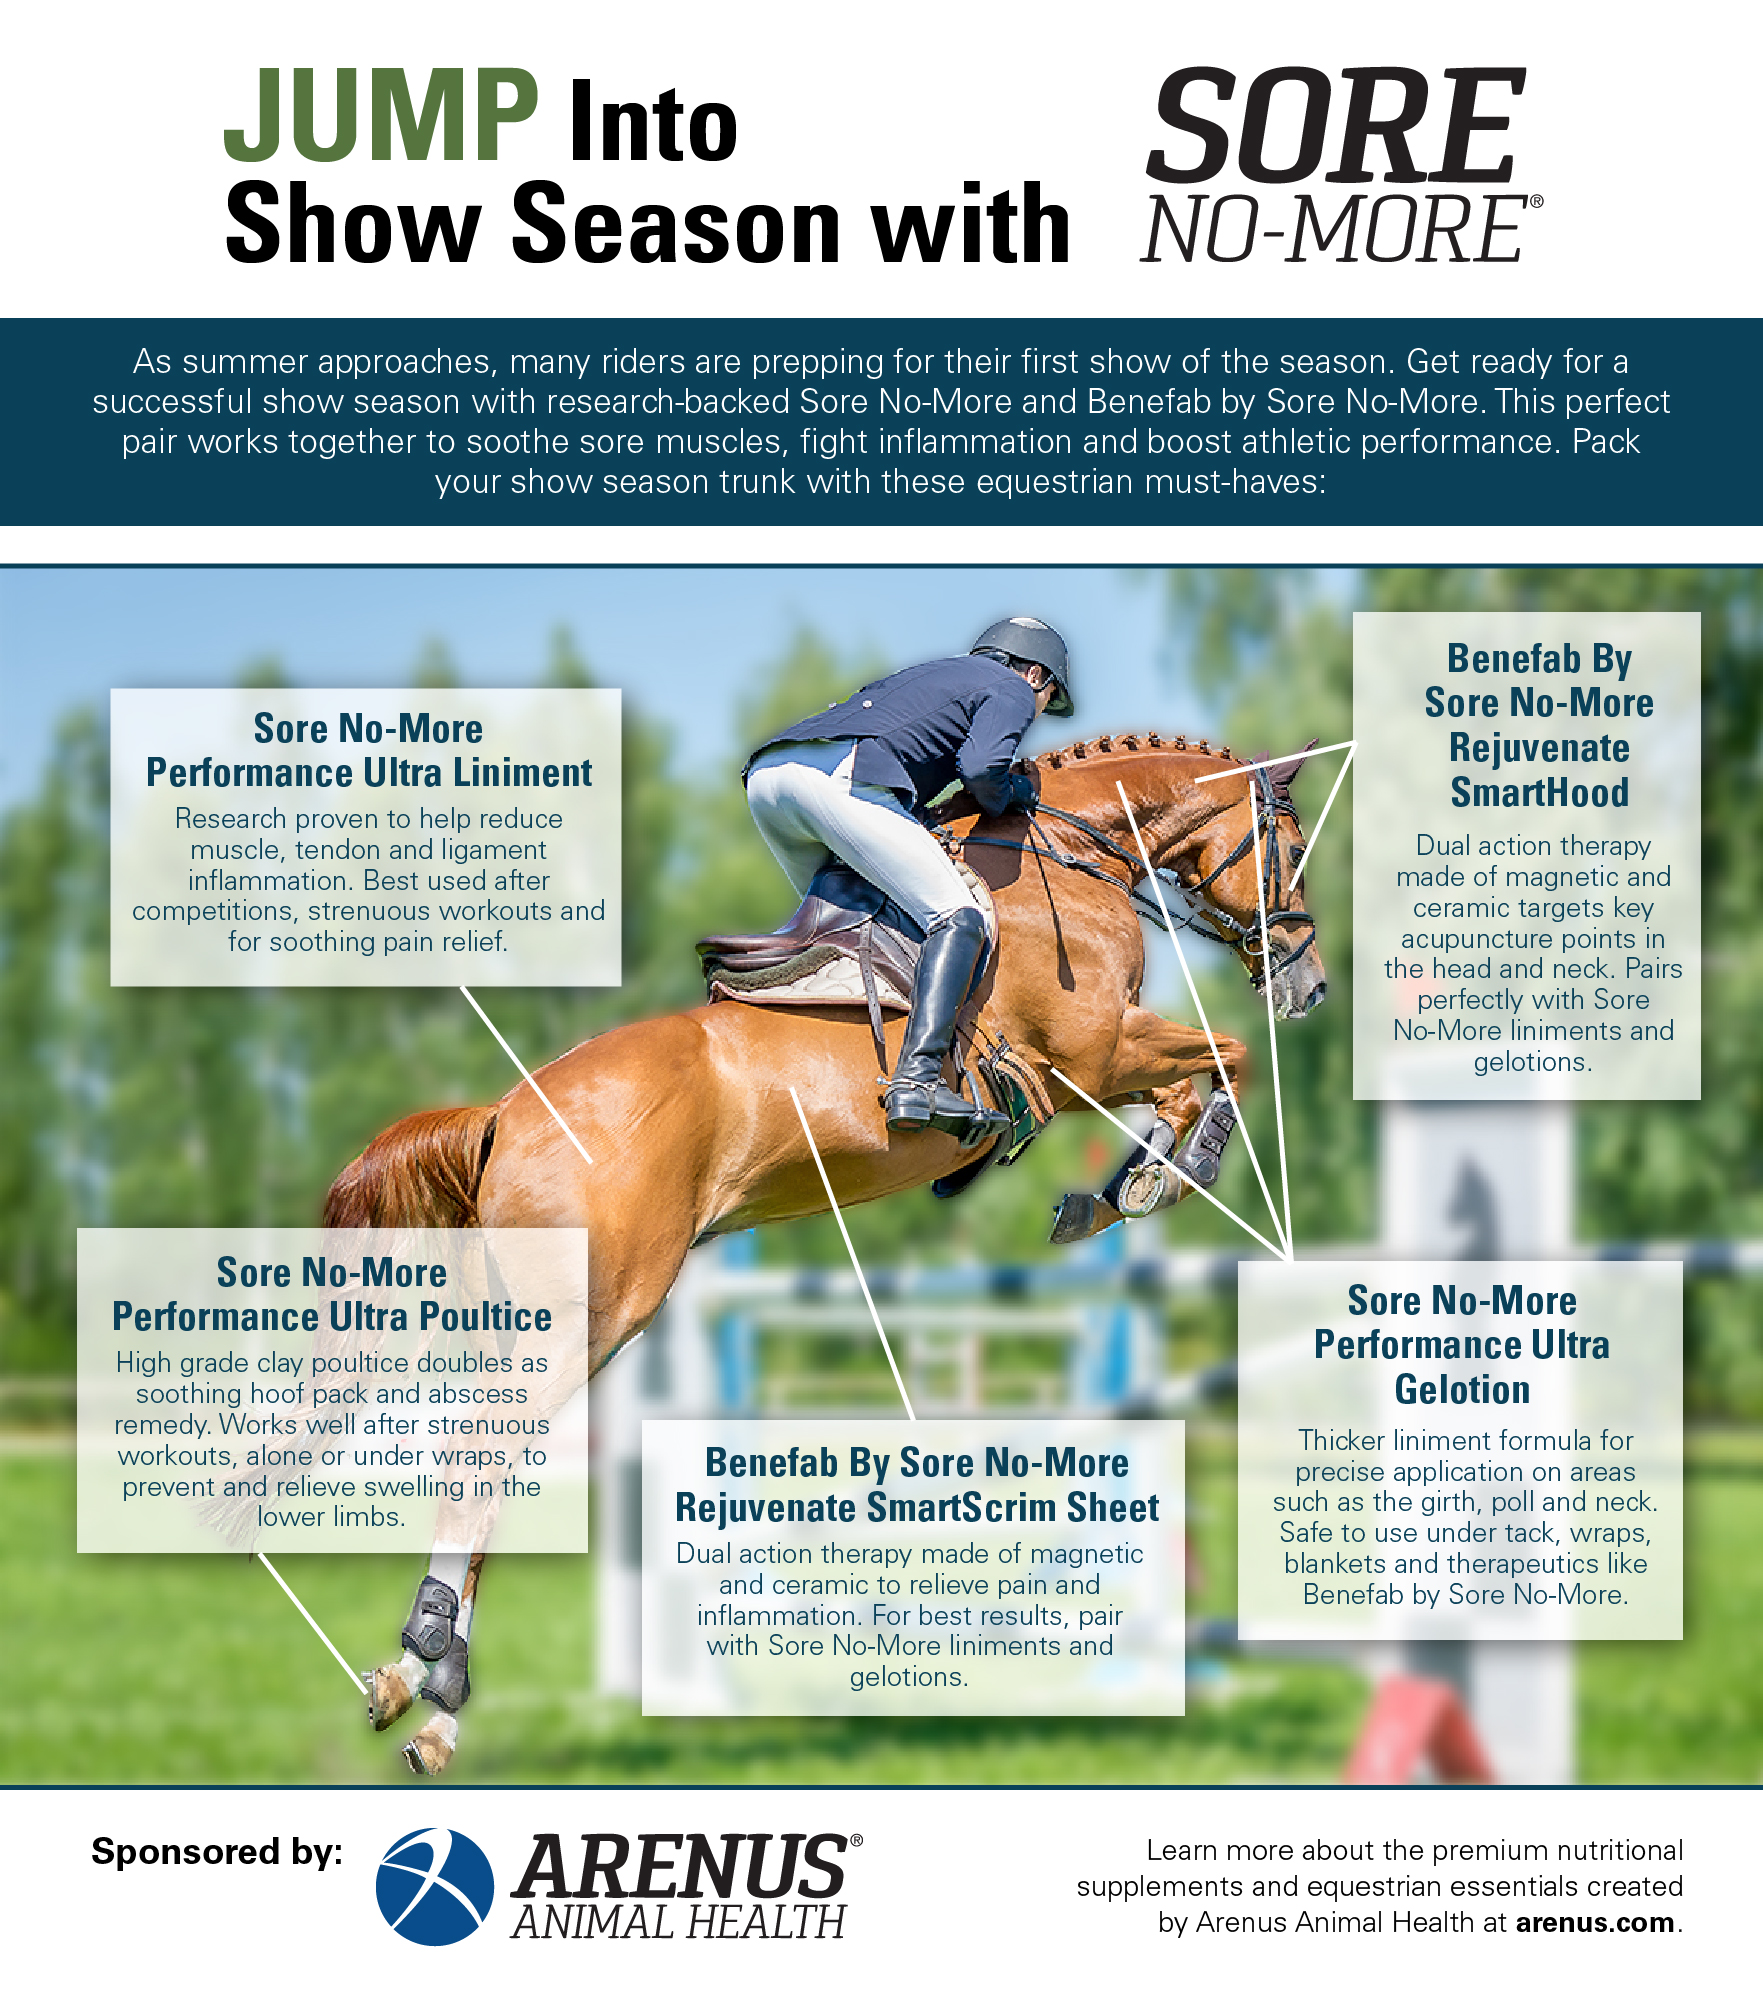 Jump Into Show Season with Sore No-More